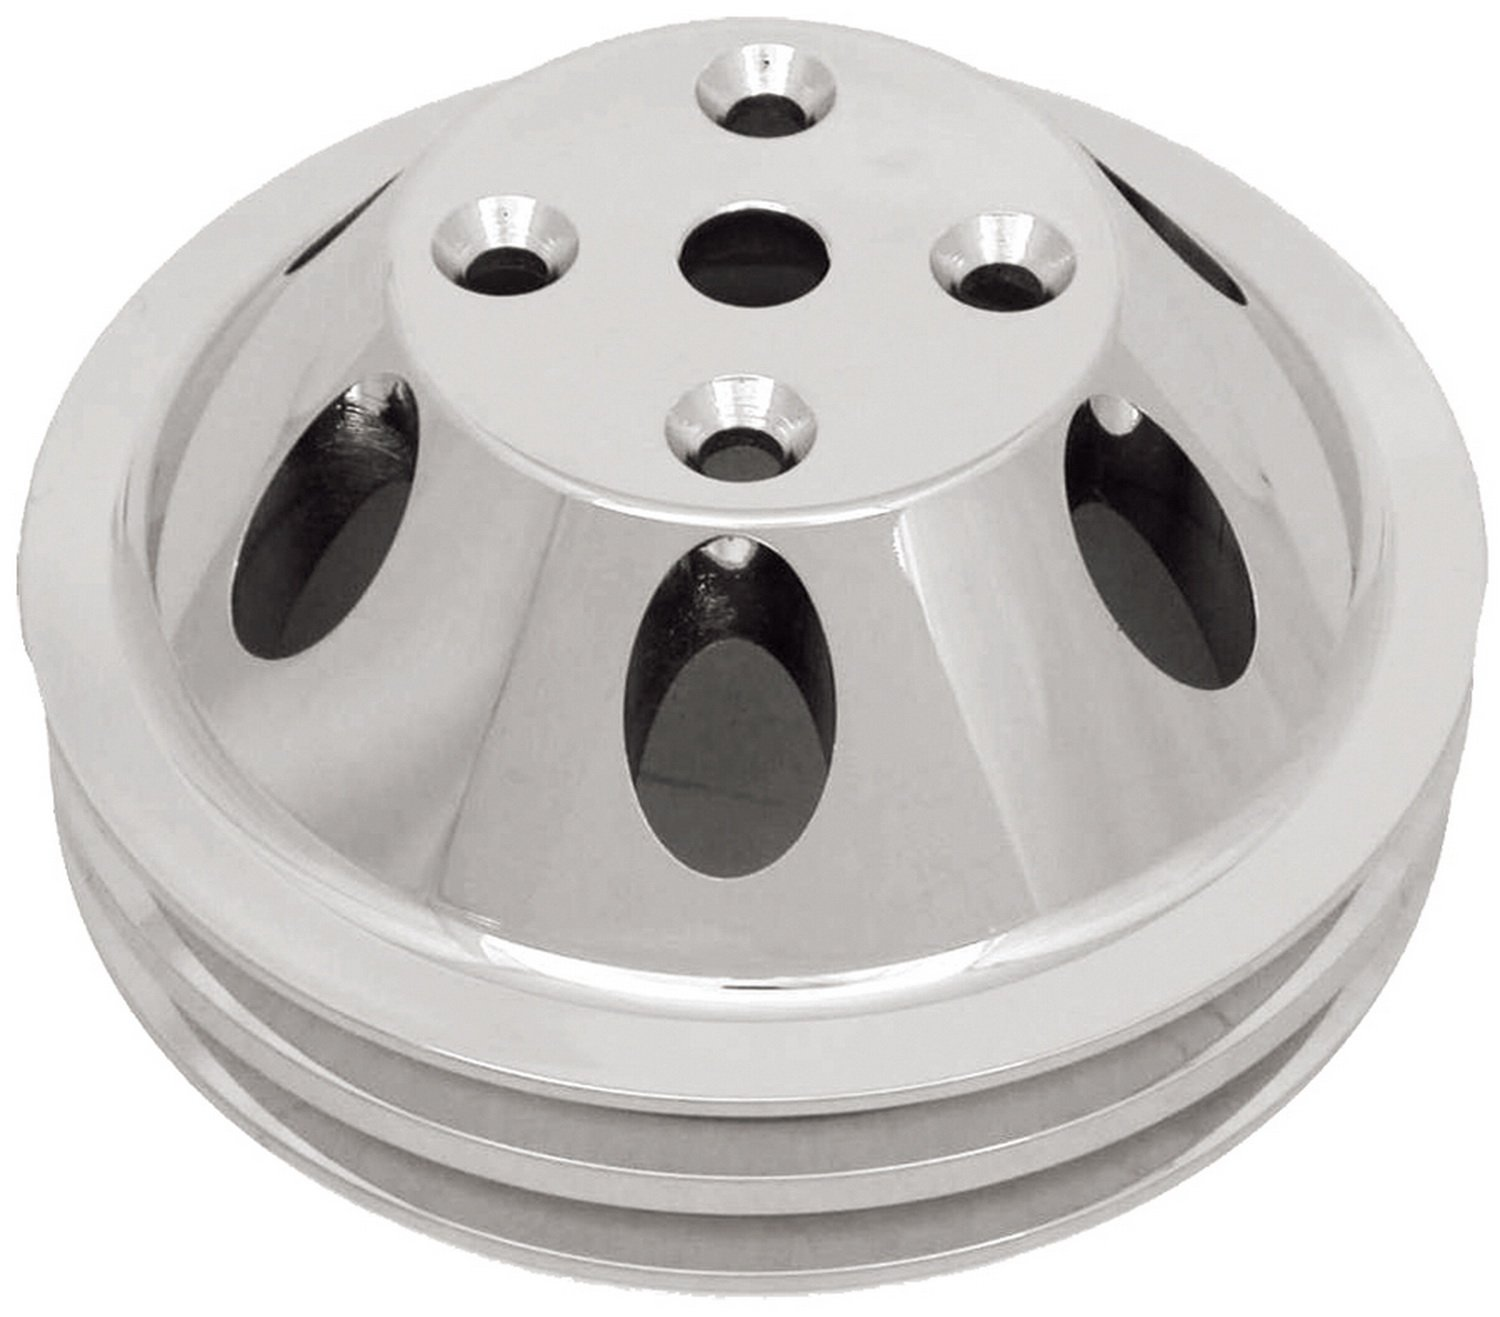 Chevy Small Block 283-350 Engines Competition Specialities CSI Accessories C9483 Polished Aluminum Water Pump Pulley Upper Double Groove Long Water Pump